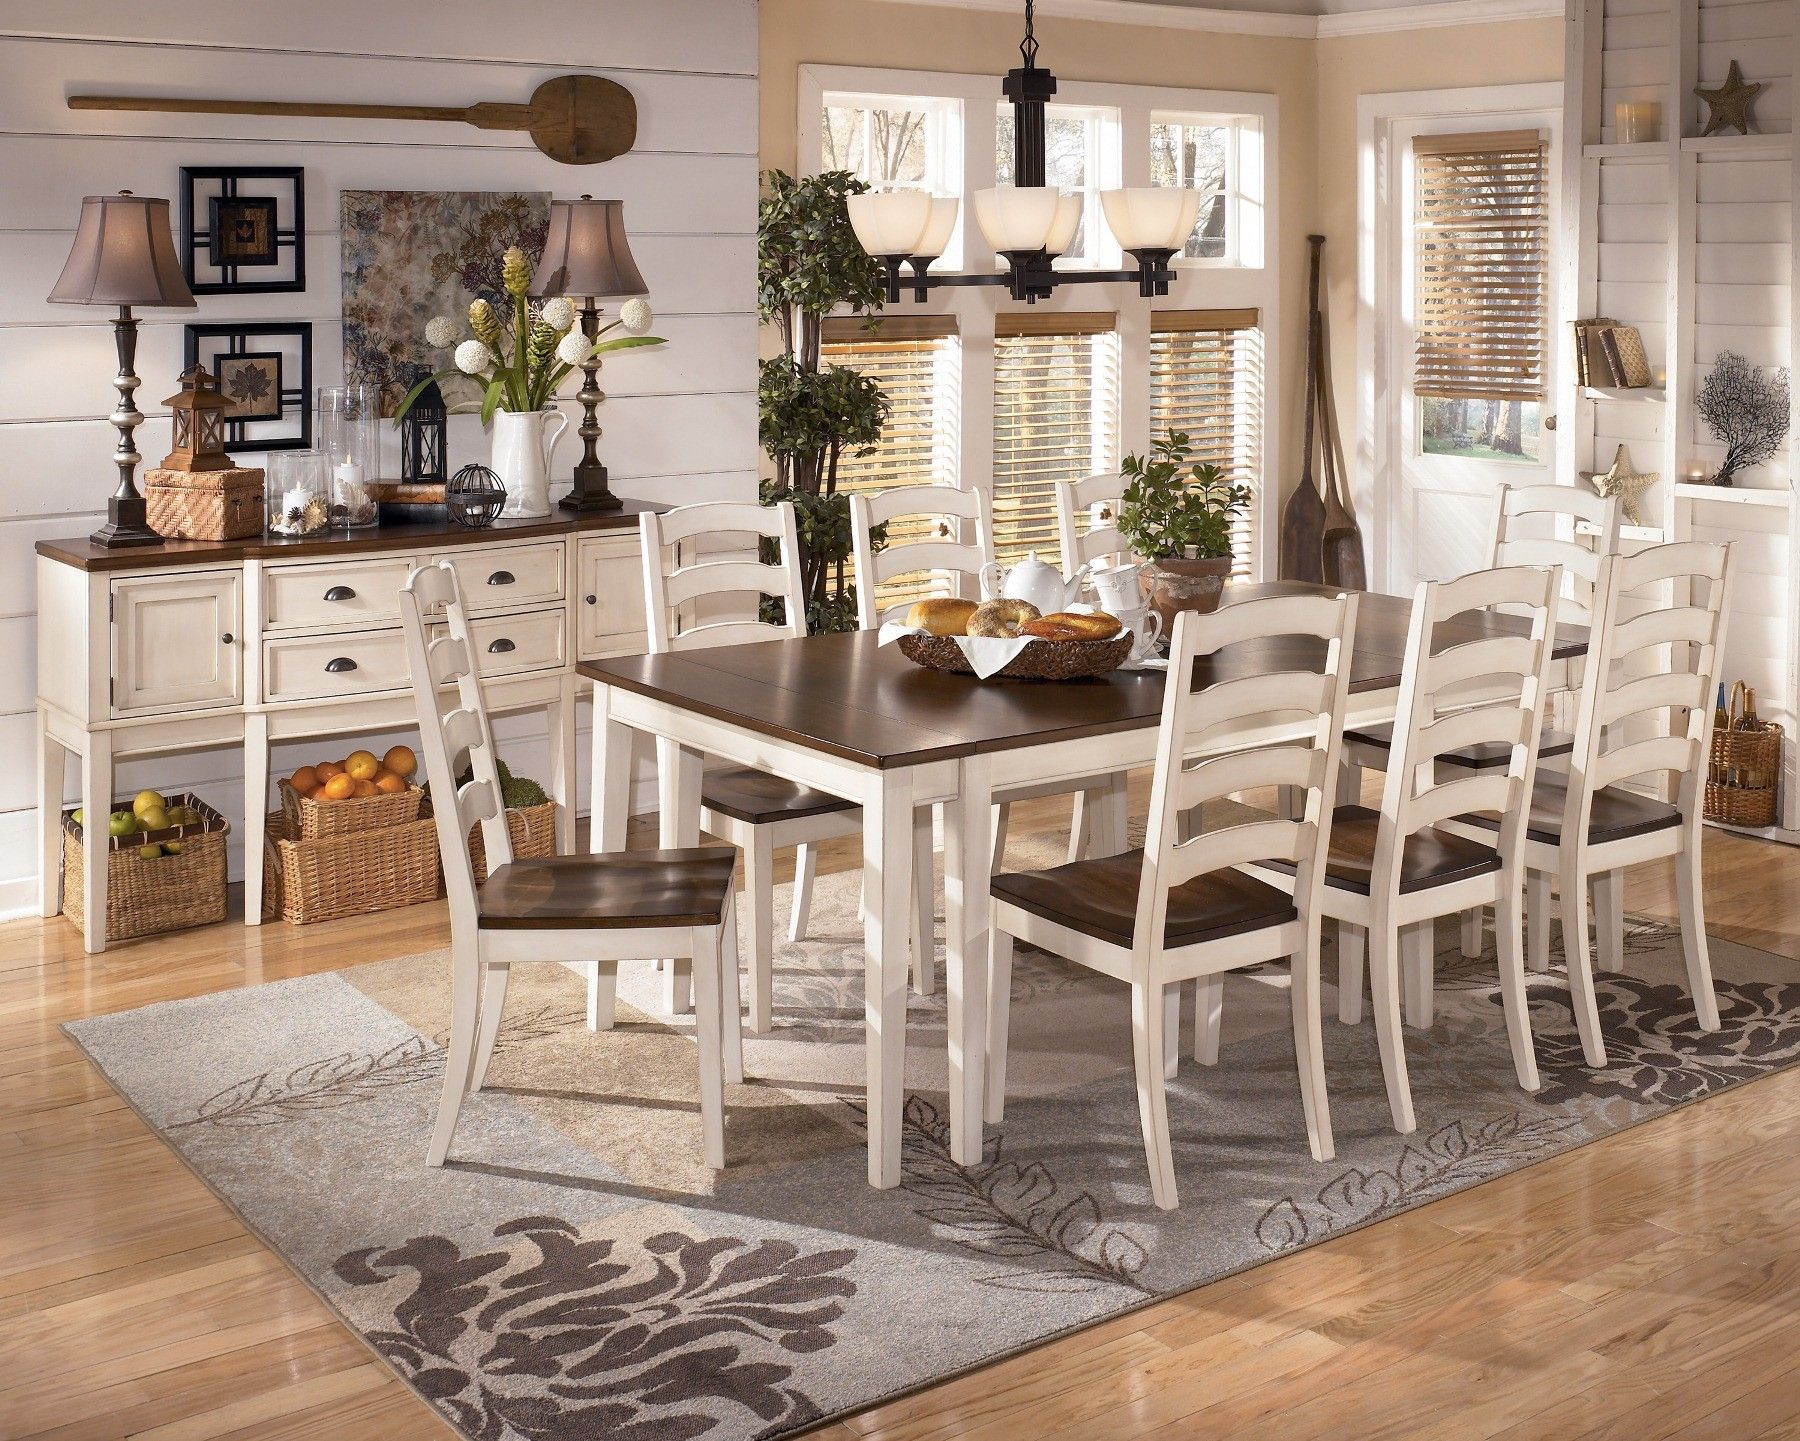 dining room table set. image of ashley furniture dining room sets